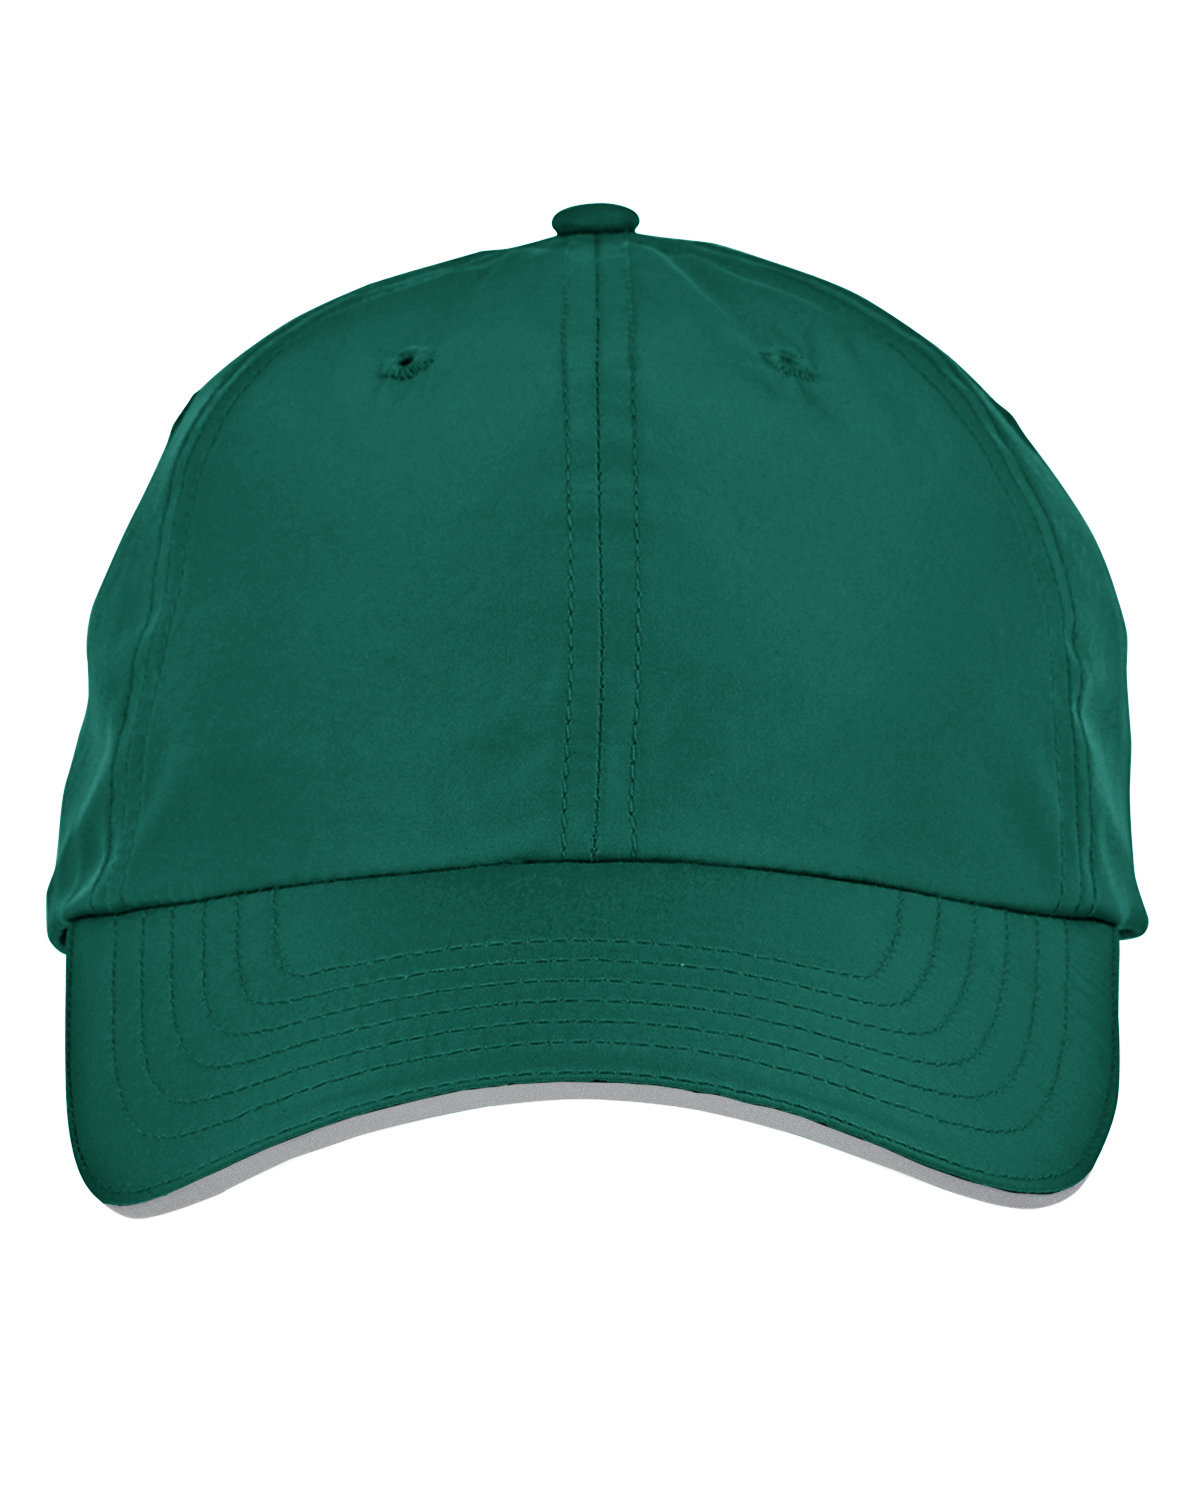 Core 365 Adult Pitch Performance Cap FOREST GREEN